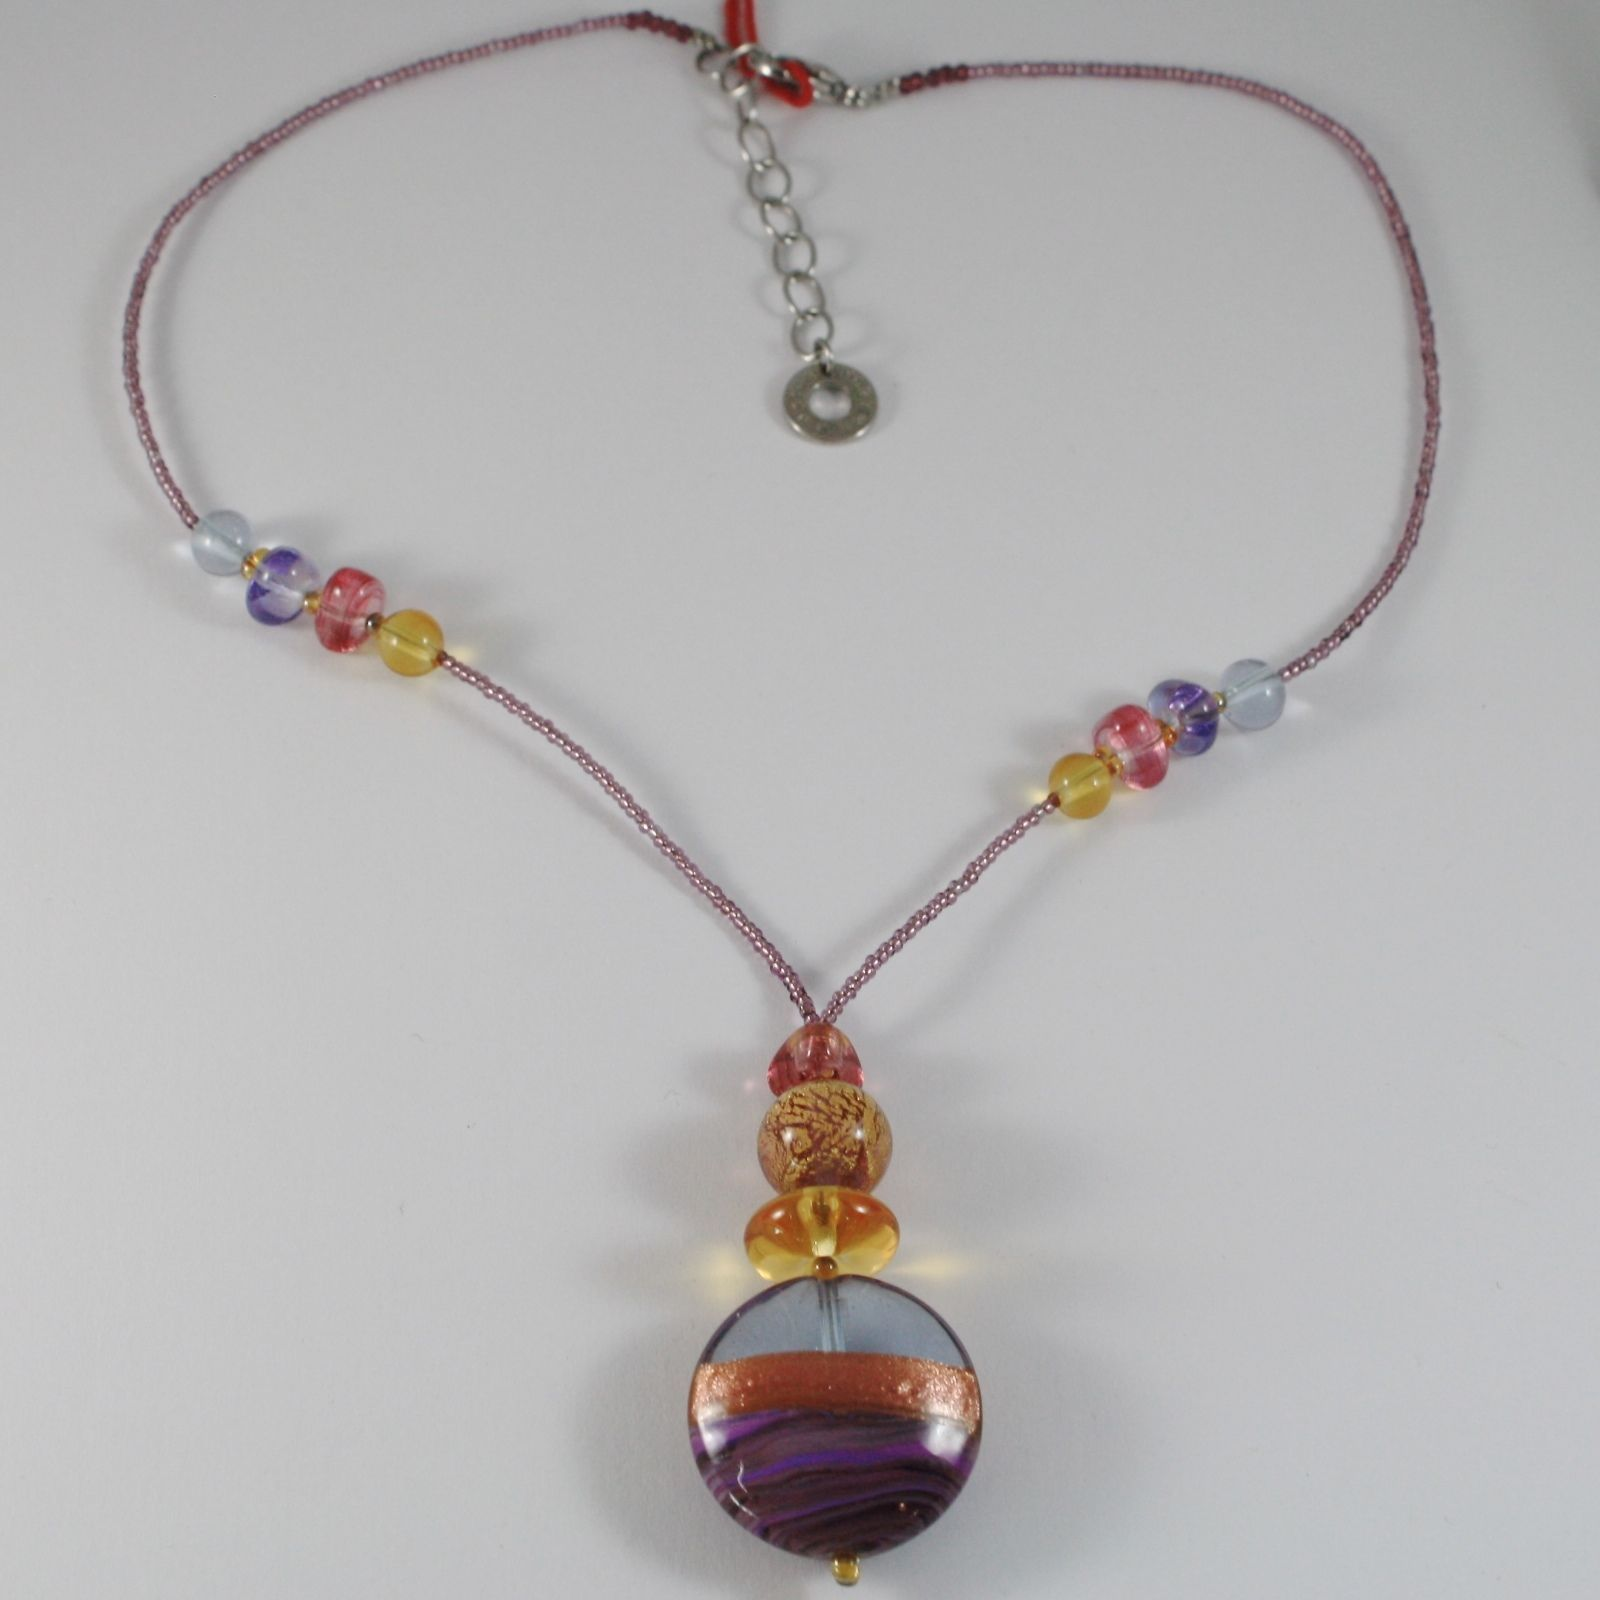 NECKLACE ANTICA MURRINA VENEZIA WITH MURANO GLASS BLUE PURPLE BRONZE CO698A05